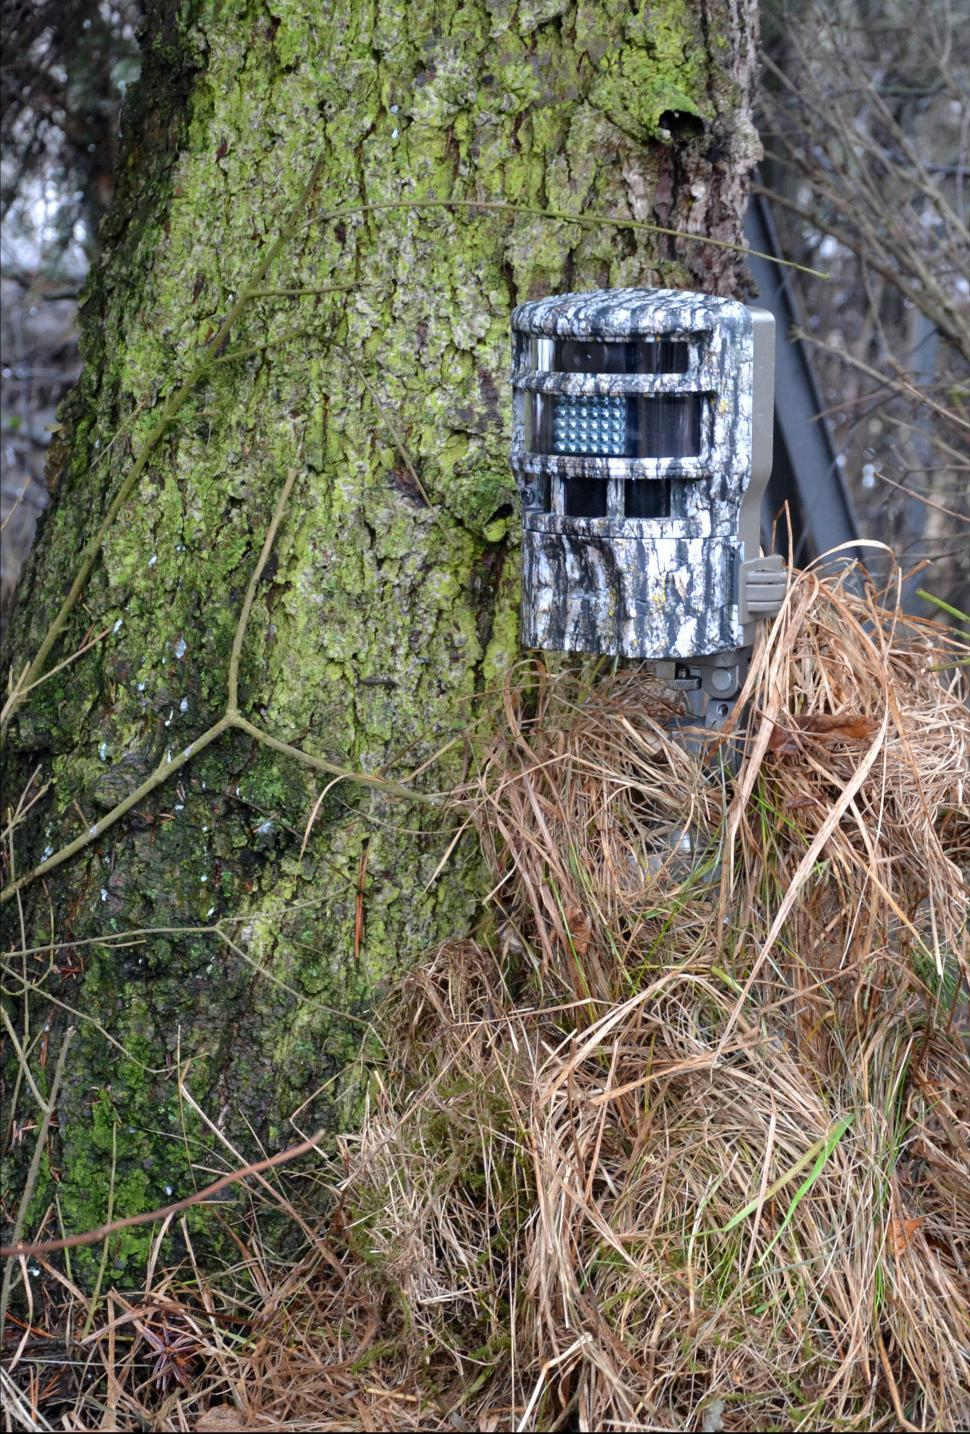 Download Free Stock HD Photo of Game camera Online